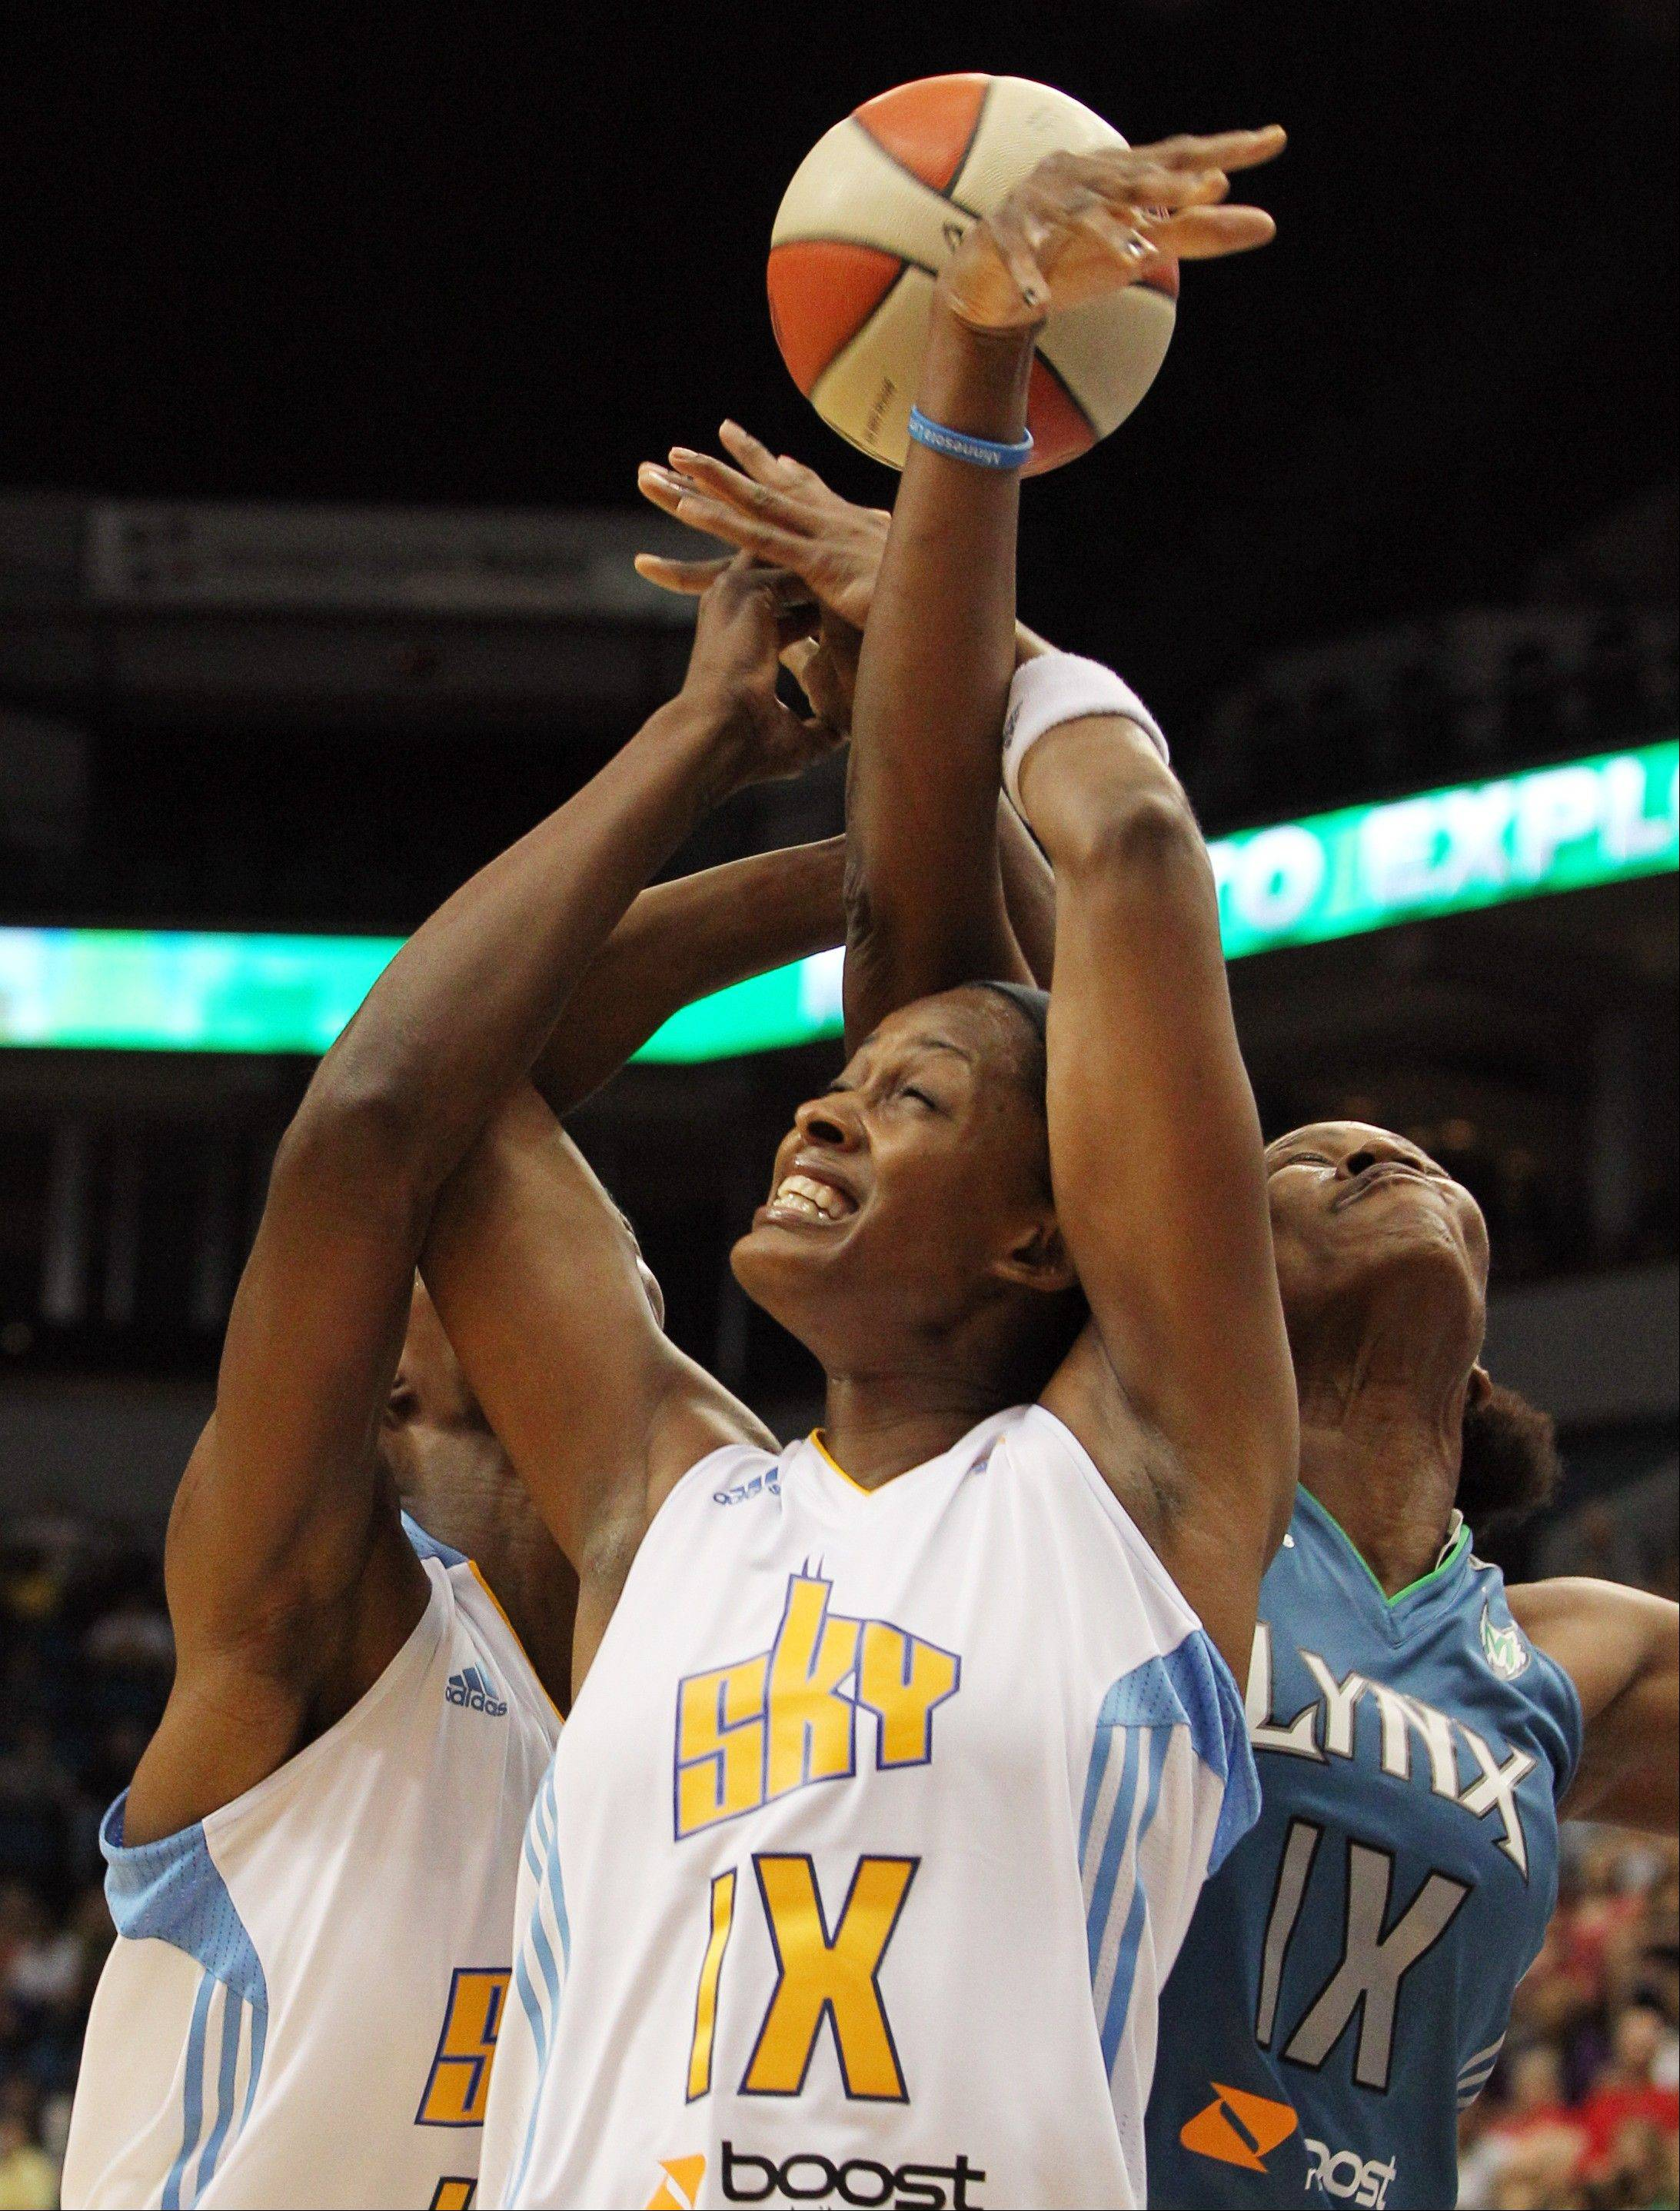 Chicago Sky's Swin Cash, center, and Sylvia Fowles, left, battle for a rebound against Minnesota Lynx's Taj McWilliams-Franklin during the first half of a WNBA basketball game, Saturday June 23, 2012, in Minneapolis.